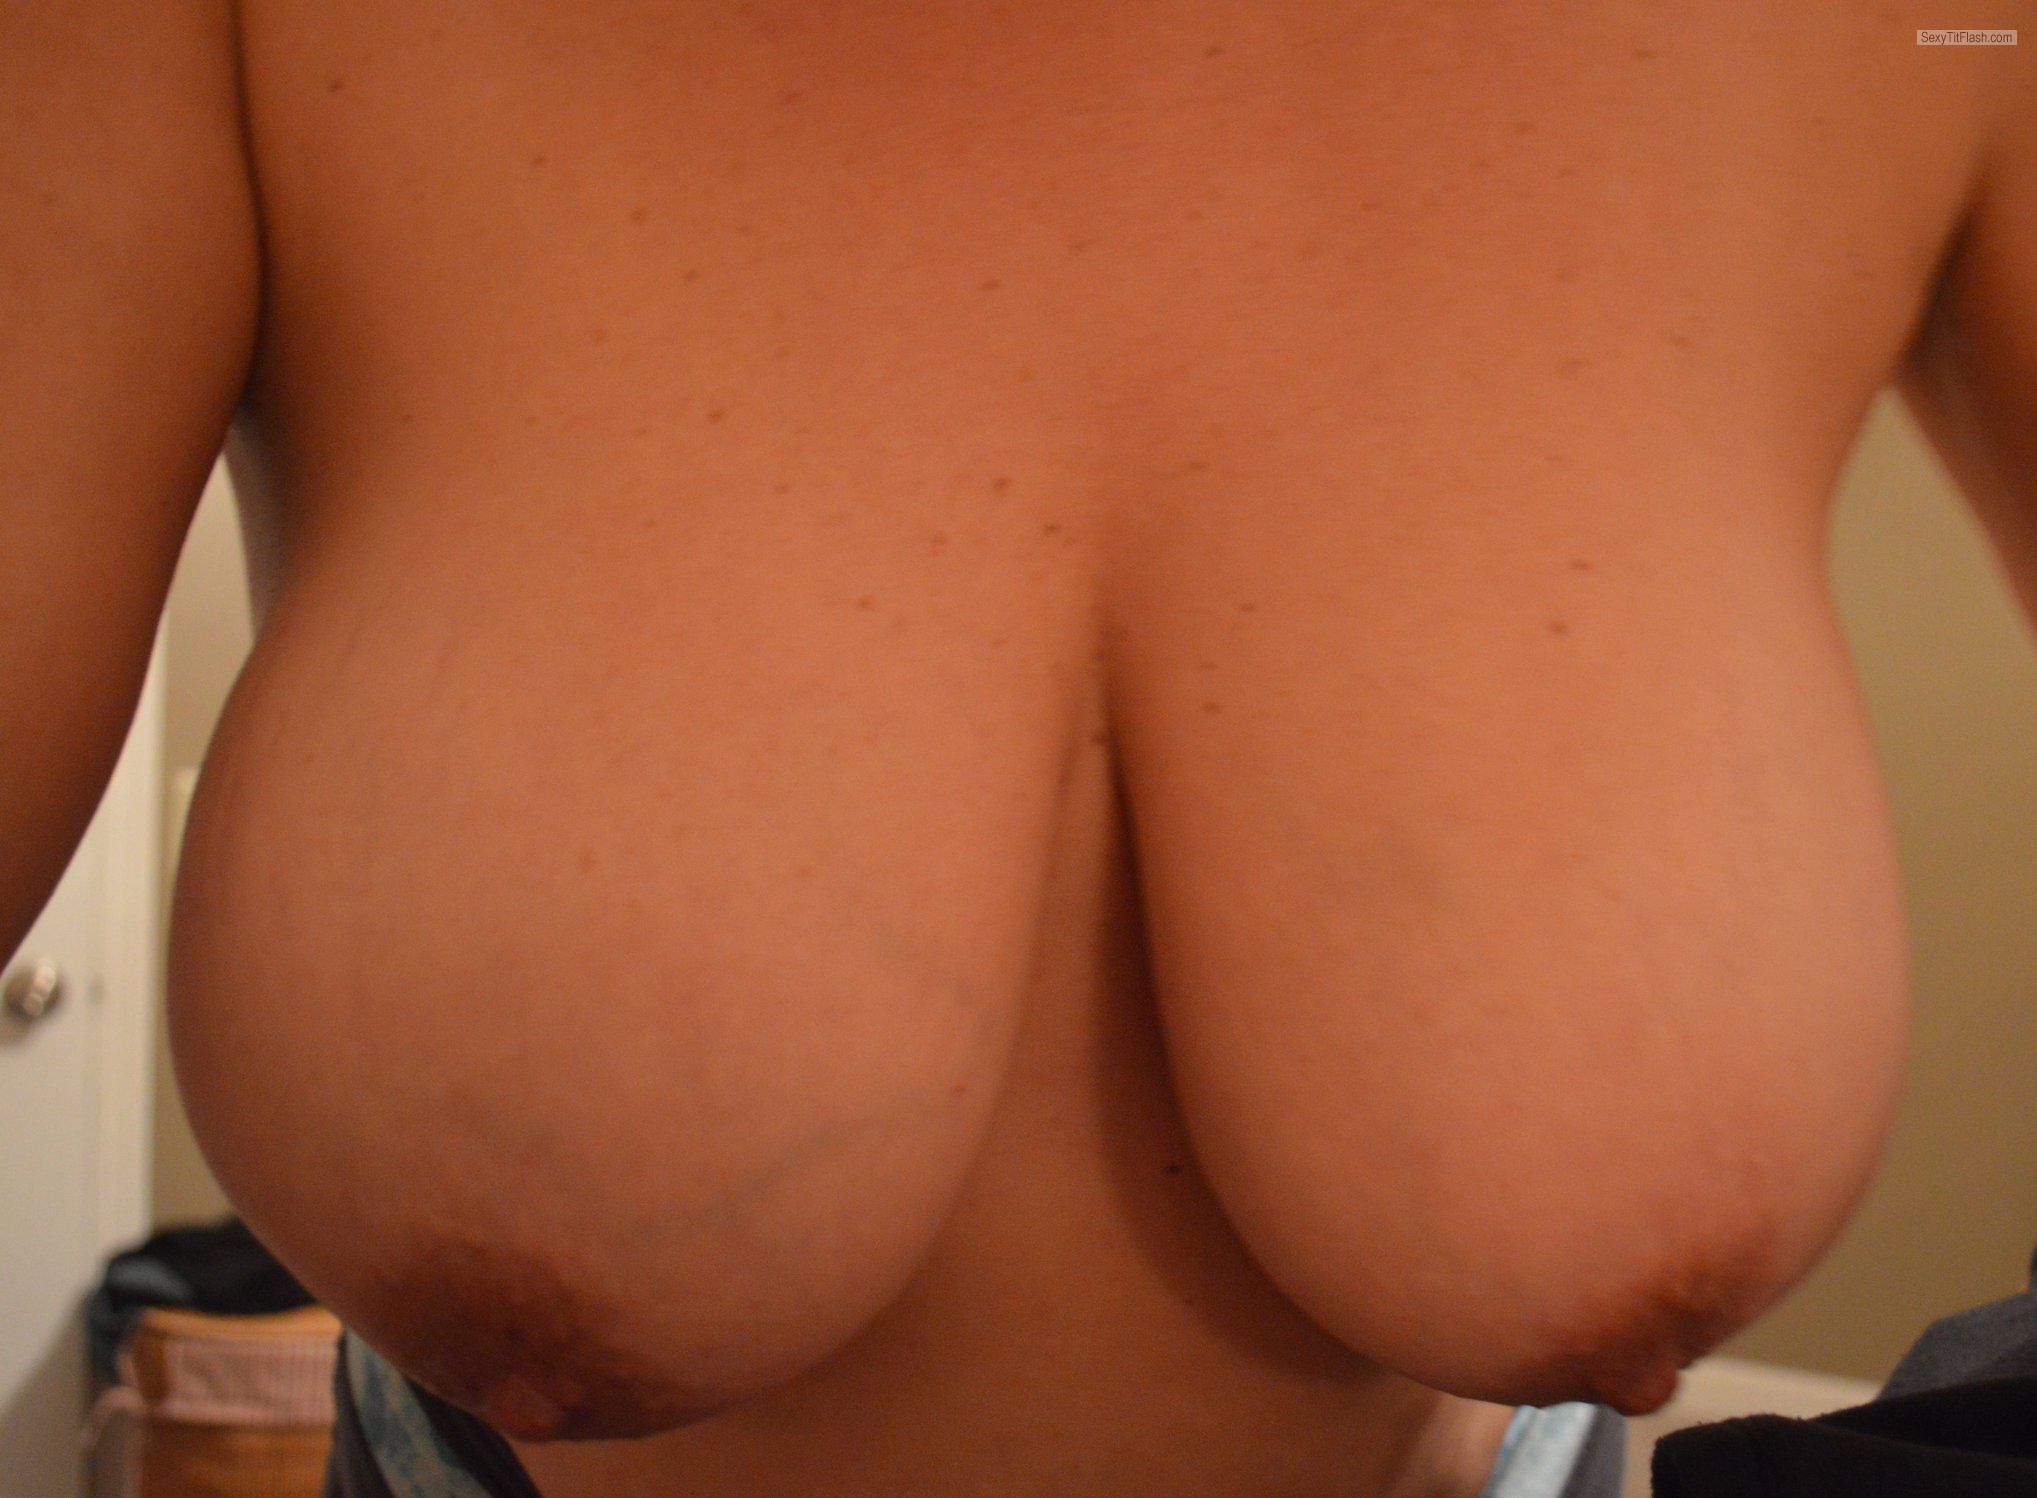 Tit Flash: Wife's Big Tits - Molly from United States